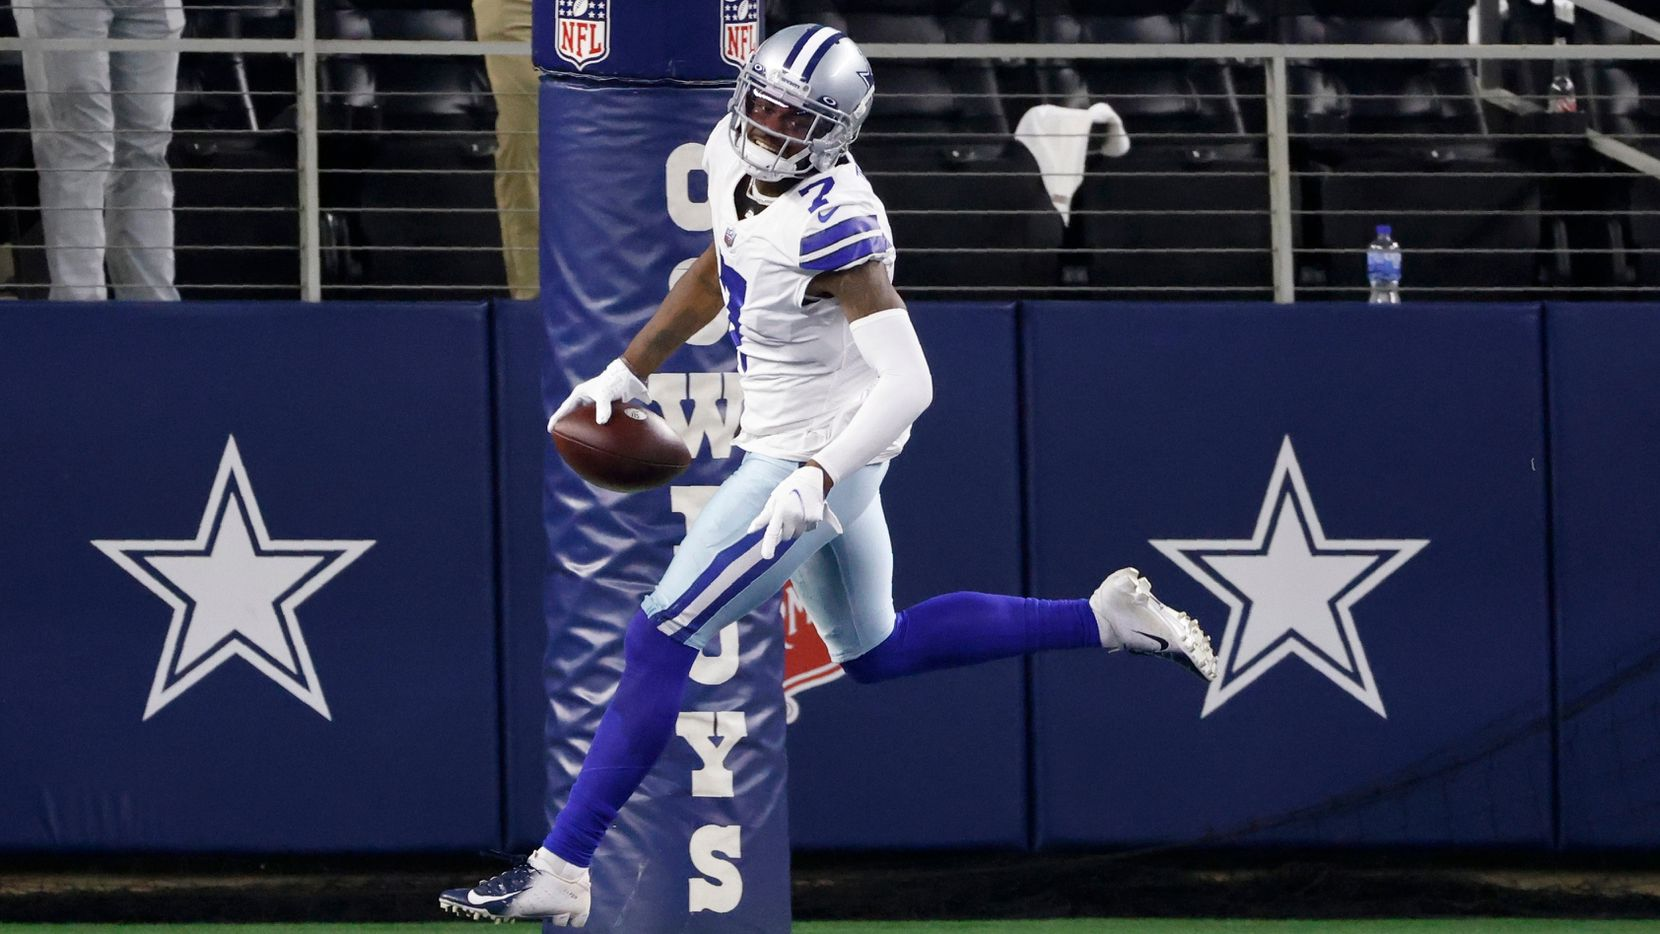 Dallas Cowboys cornerback Trevon Diggs (7) and safety Jayron Kearse (27) celebrate after Diggs intercepted a Philadelphia Eagles' Jalen Hurts pass and returned it for a touchdown in the second half of an NFL football game in Arlington, Texas, Monday, Sept. 27, 2021.